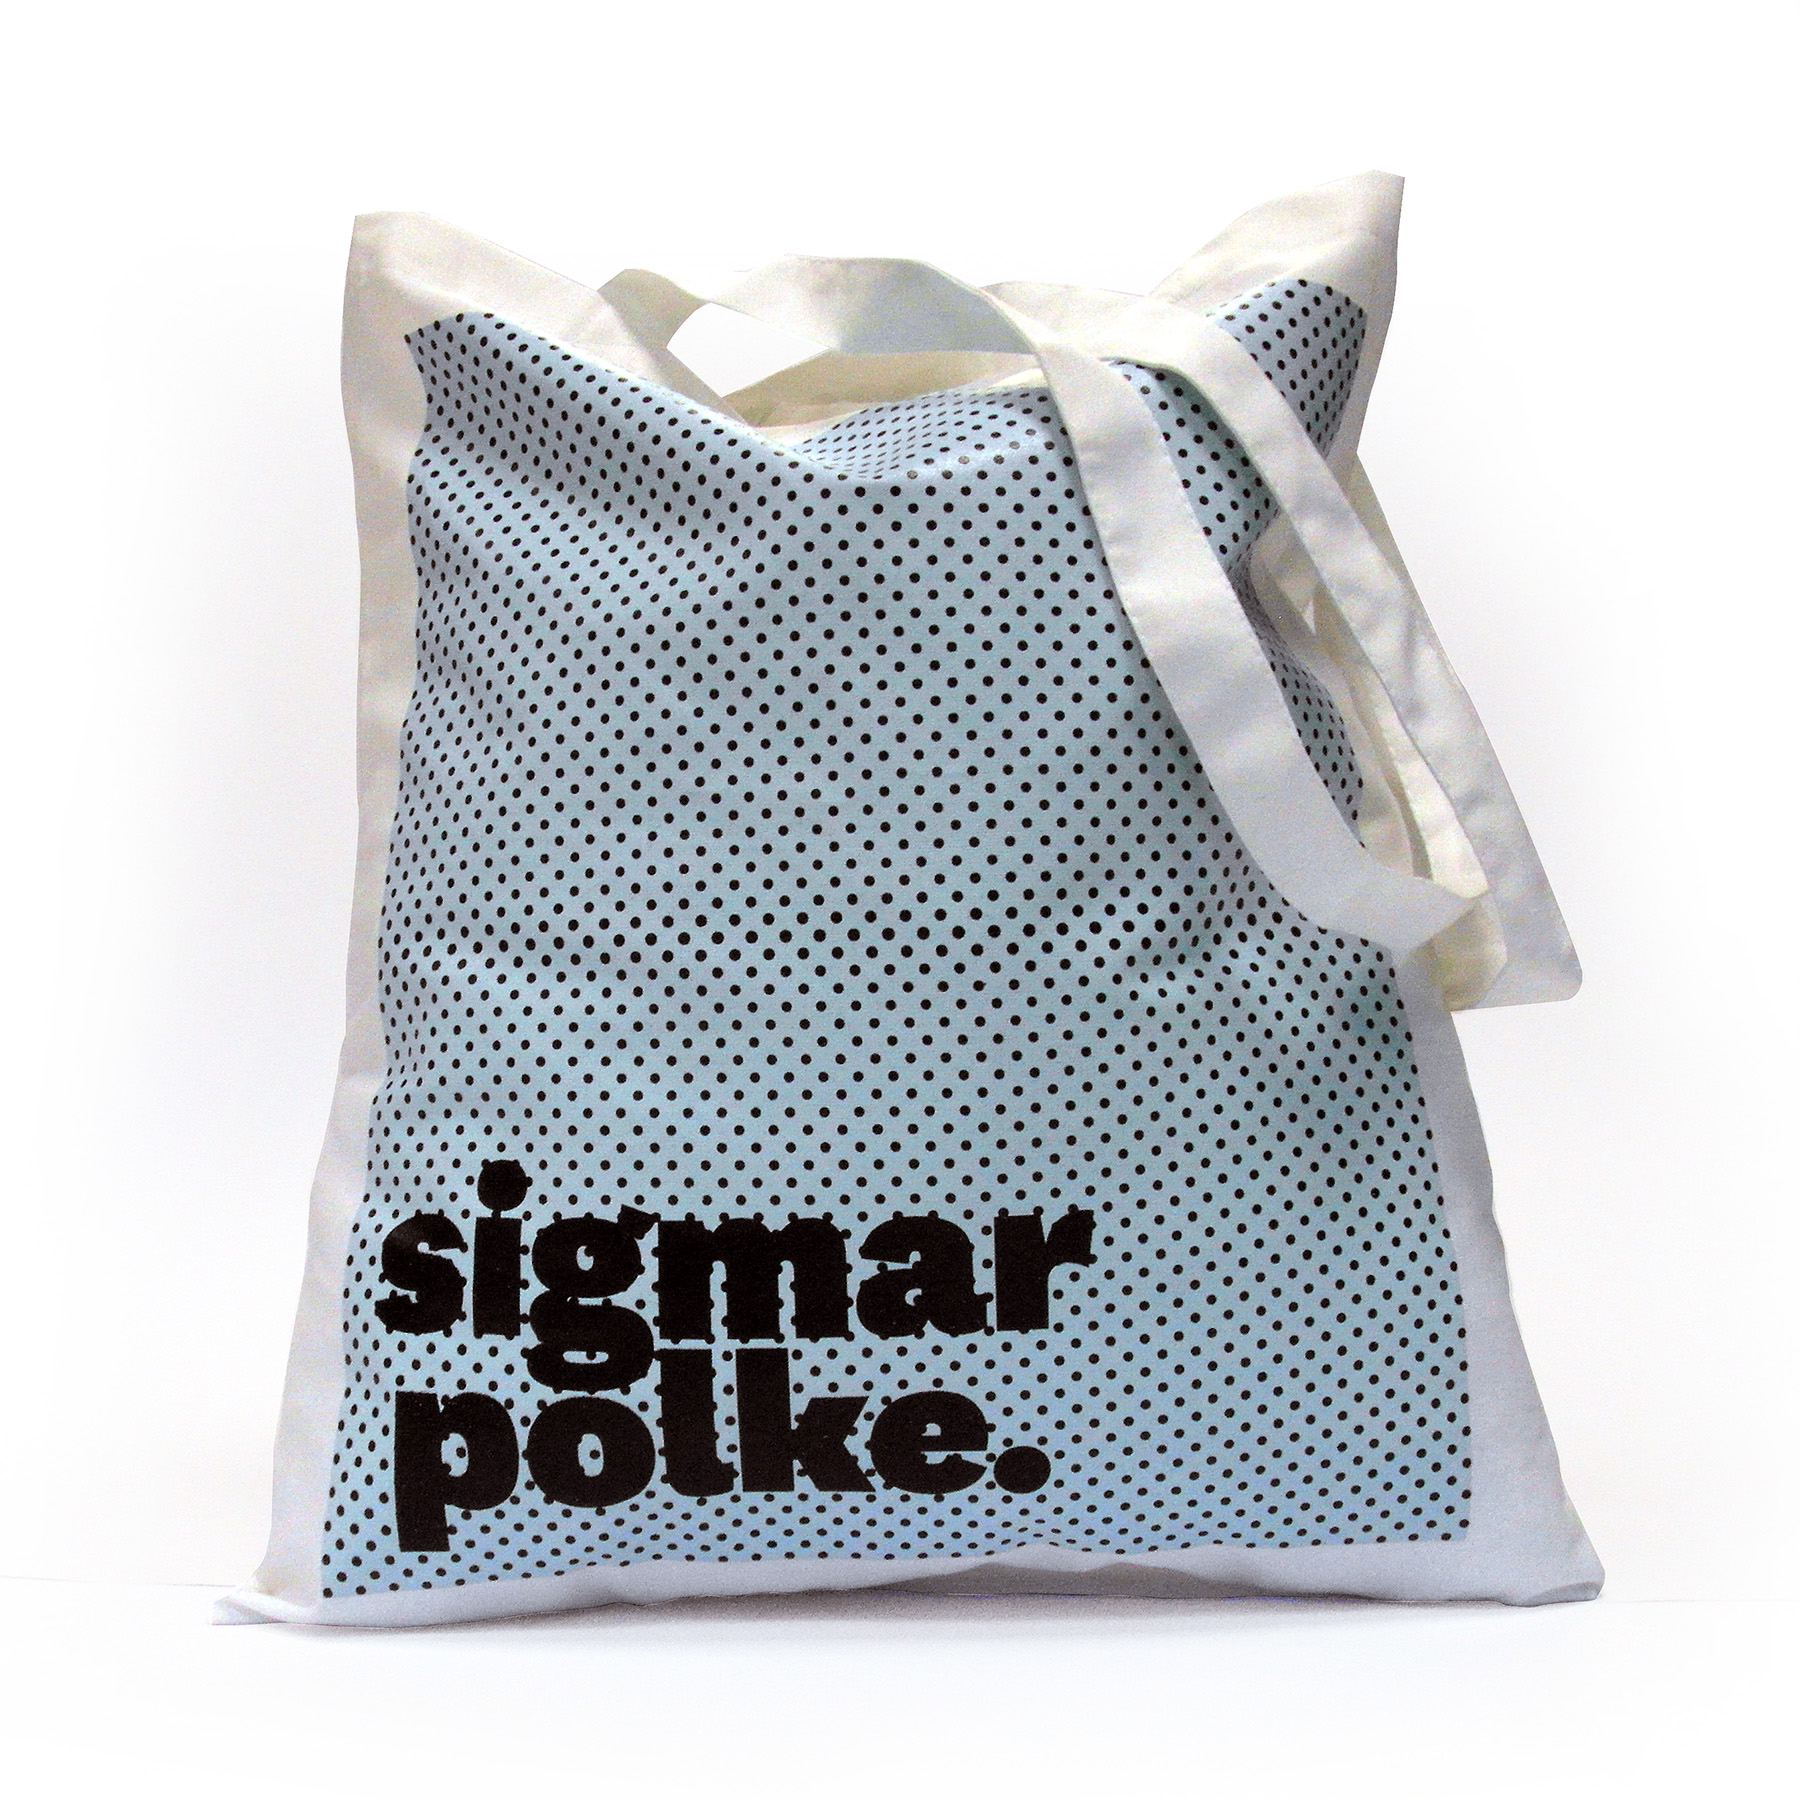 shopping-bag-polke-sadesign